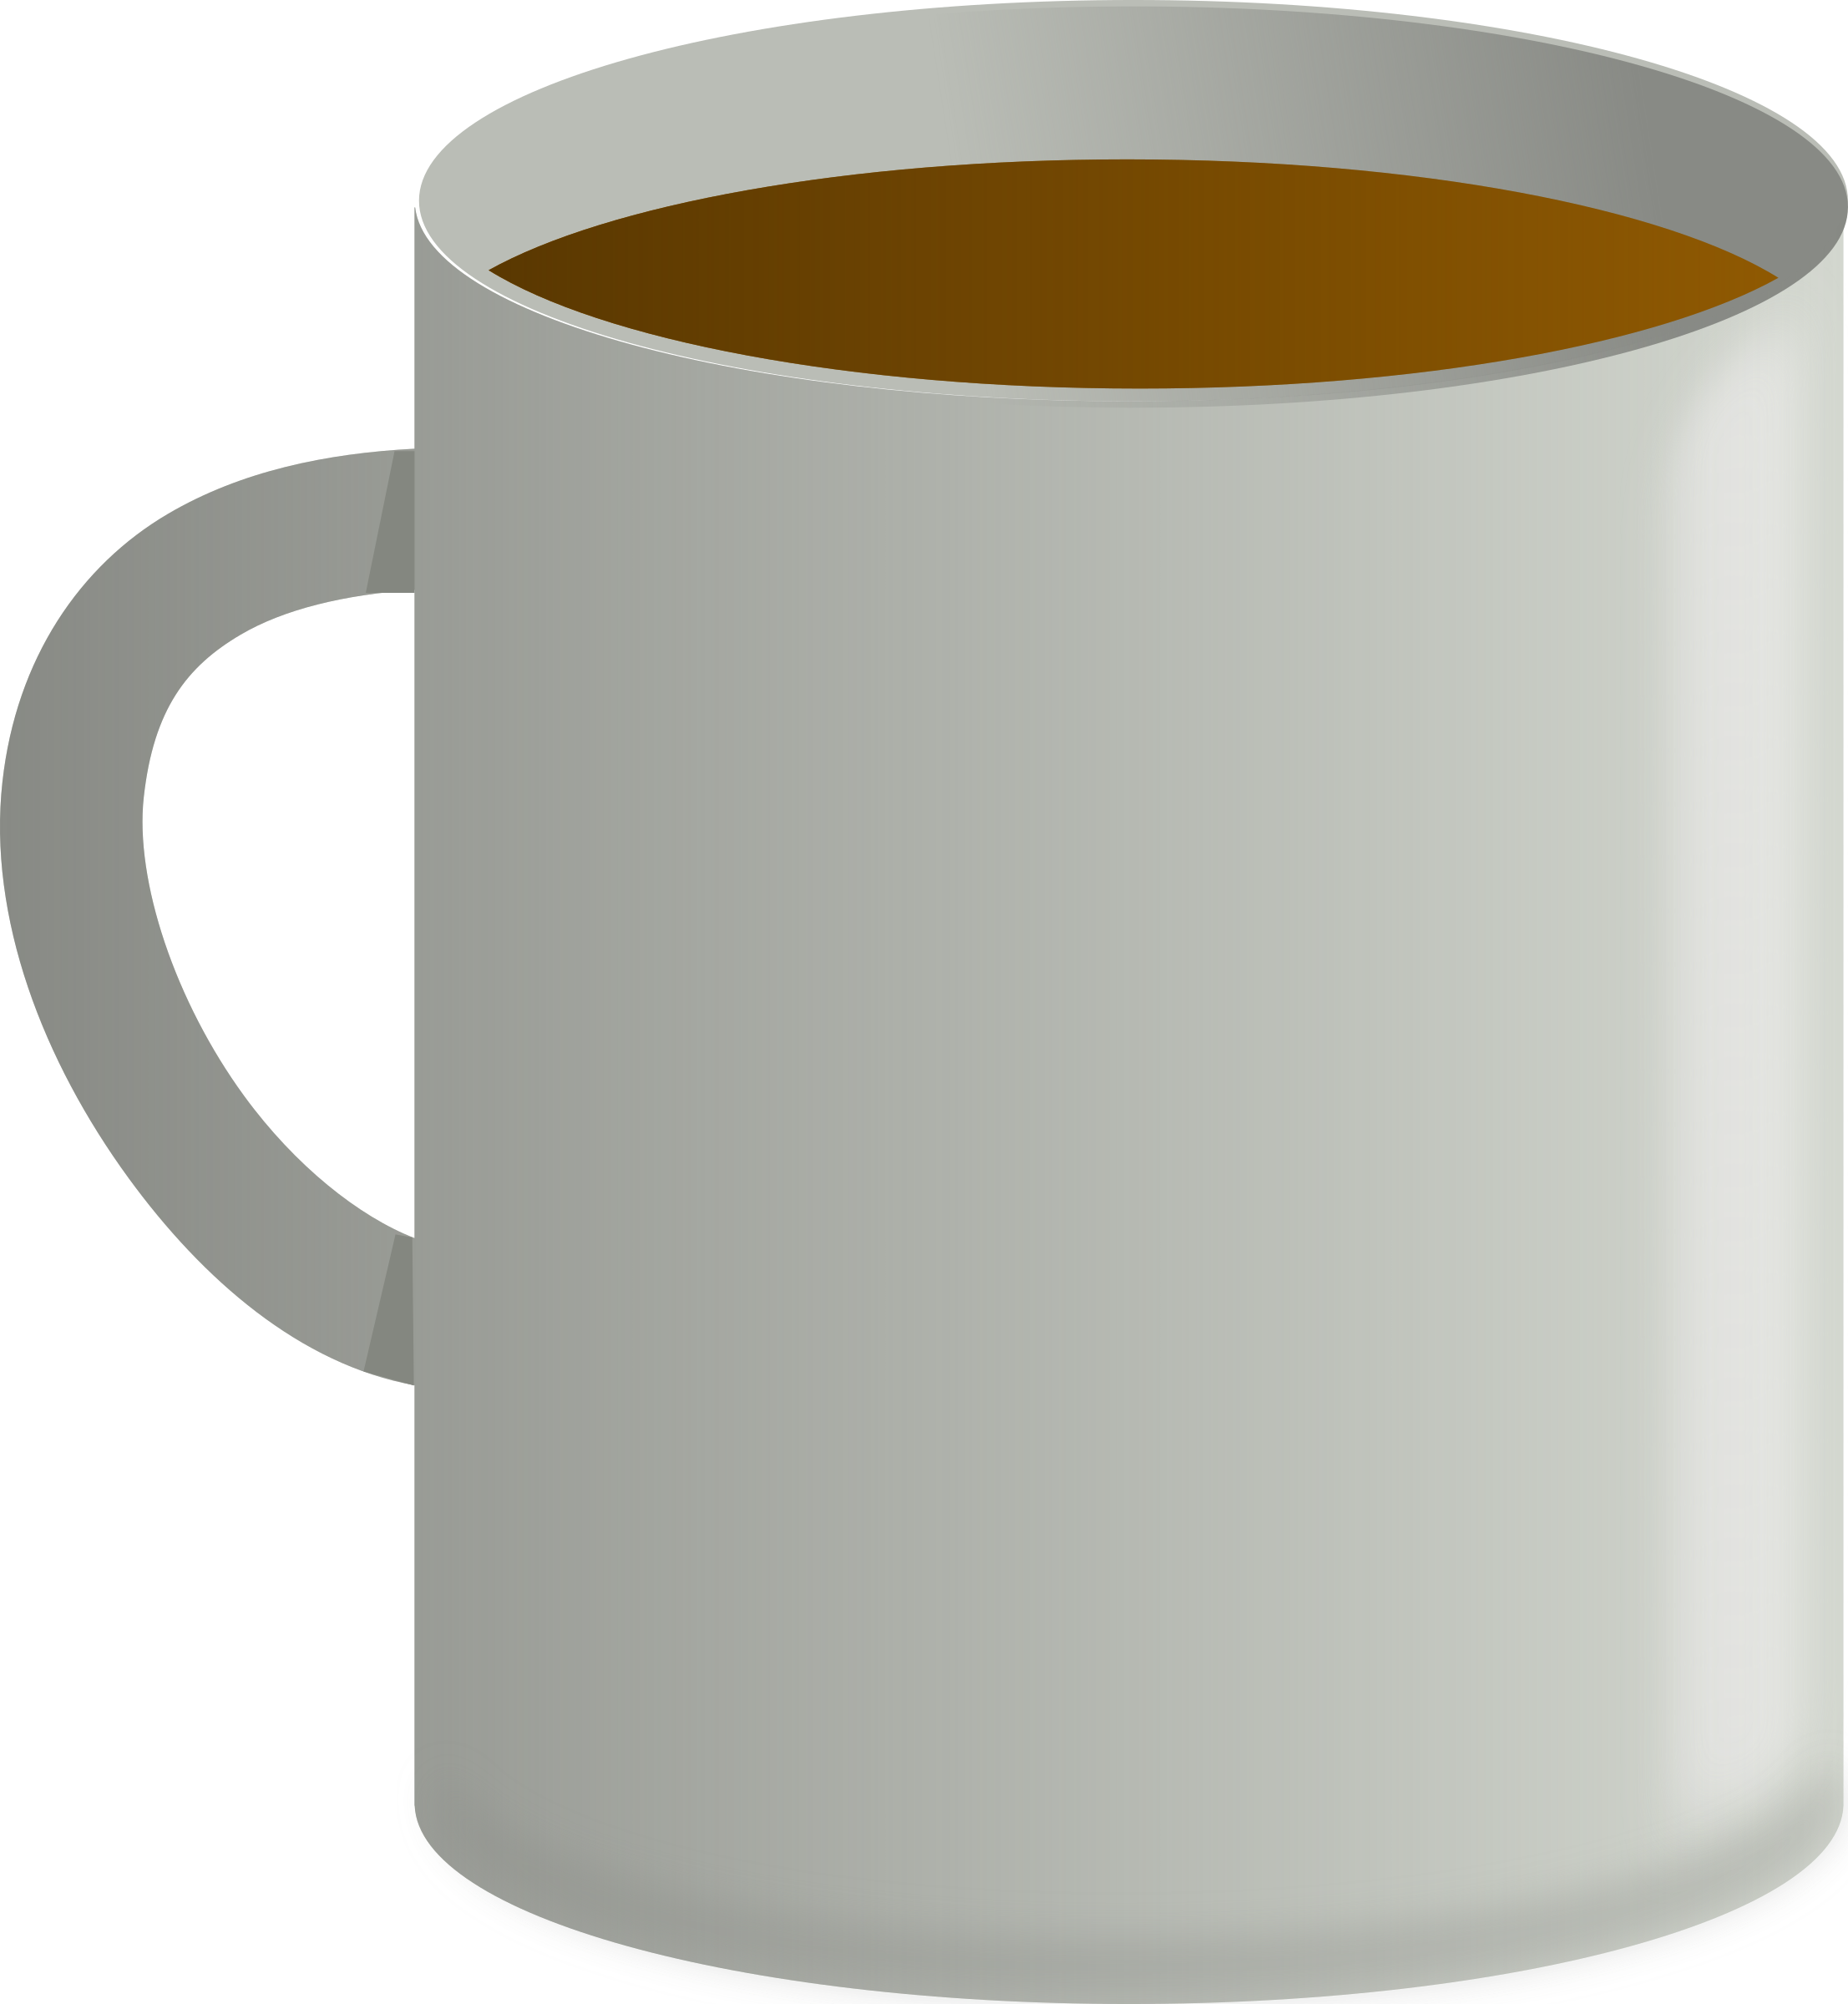 No money no coffee clipart clip royalty free download Cup, Mug Coffee PNG Image - PurePNG | Free transparent CC0 PNG Image ... clip royalty free download